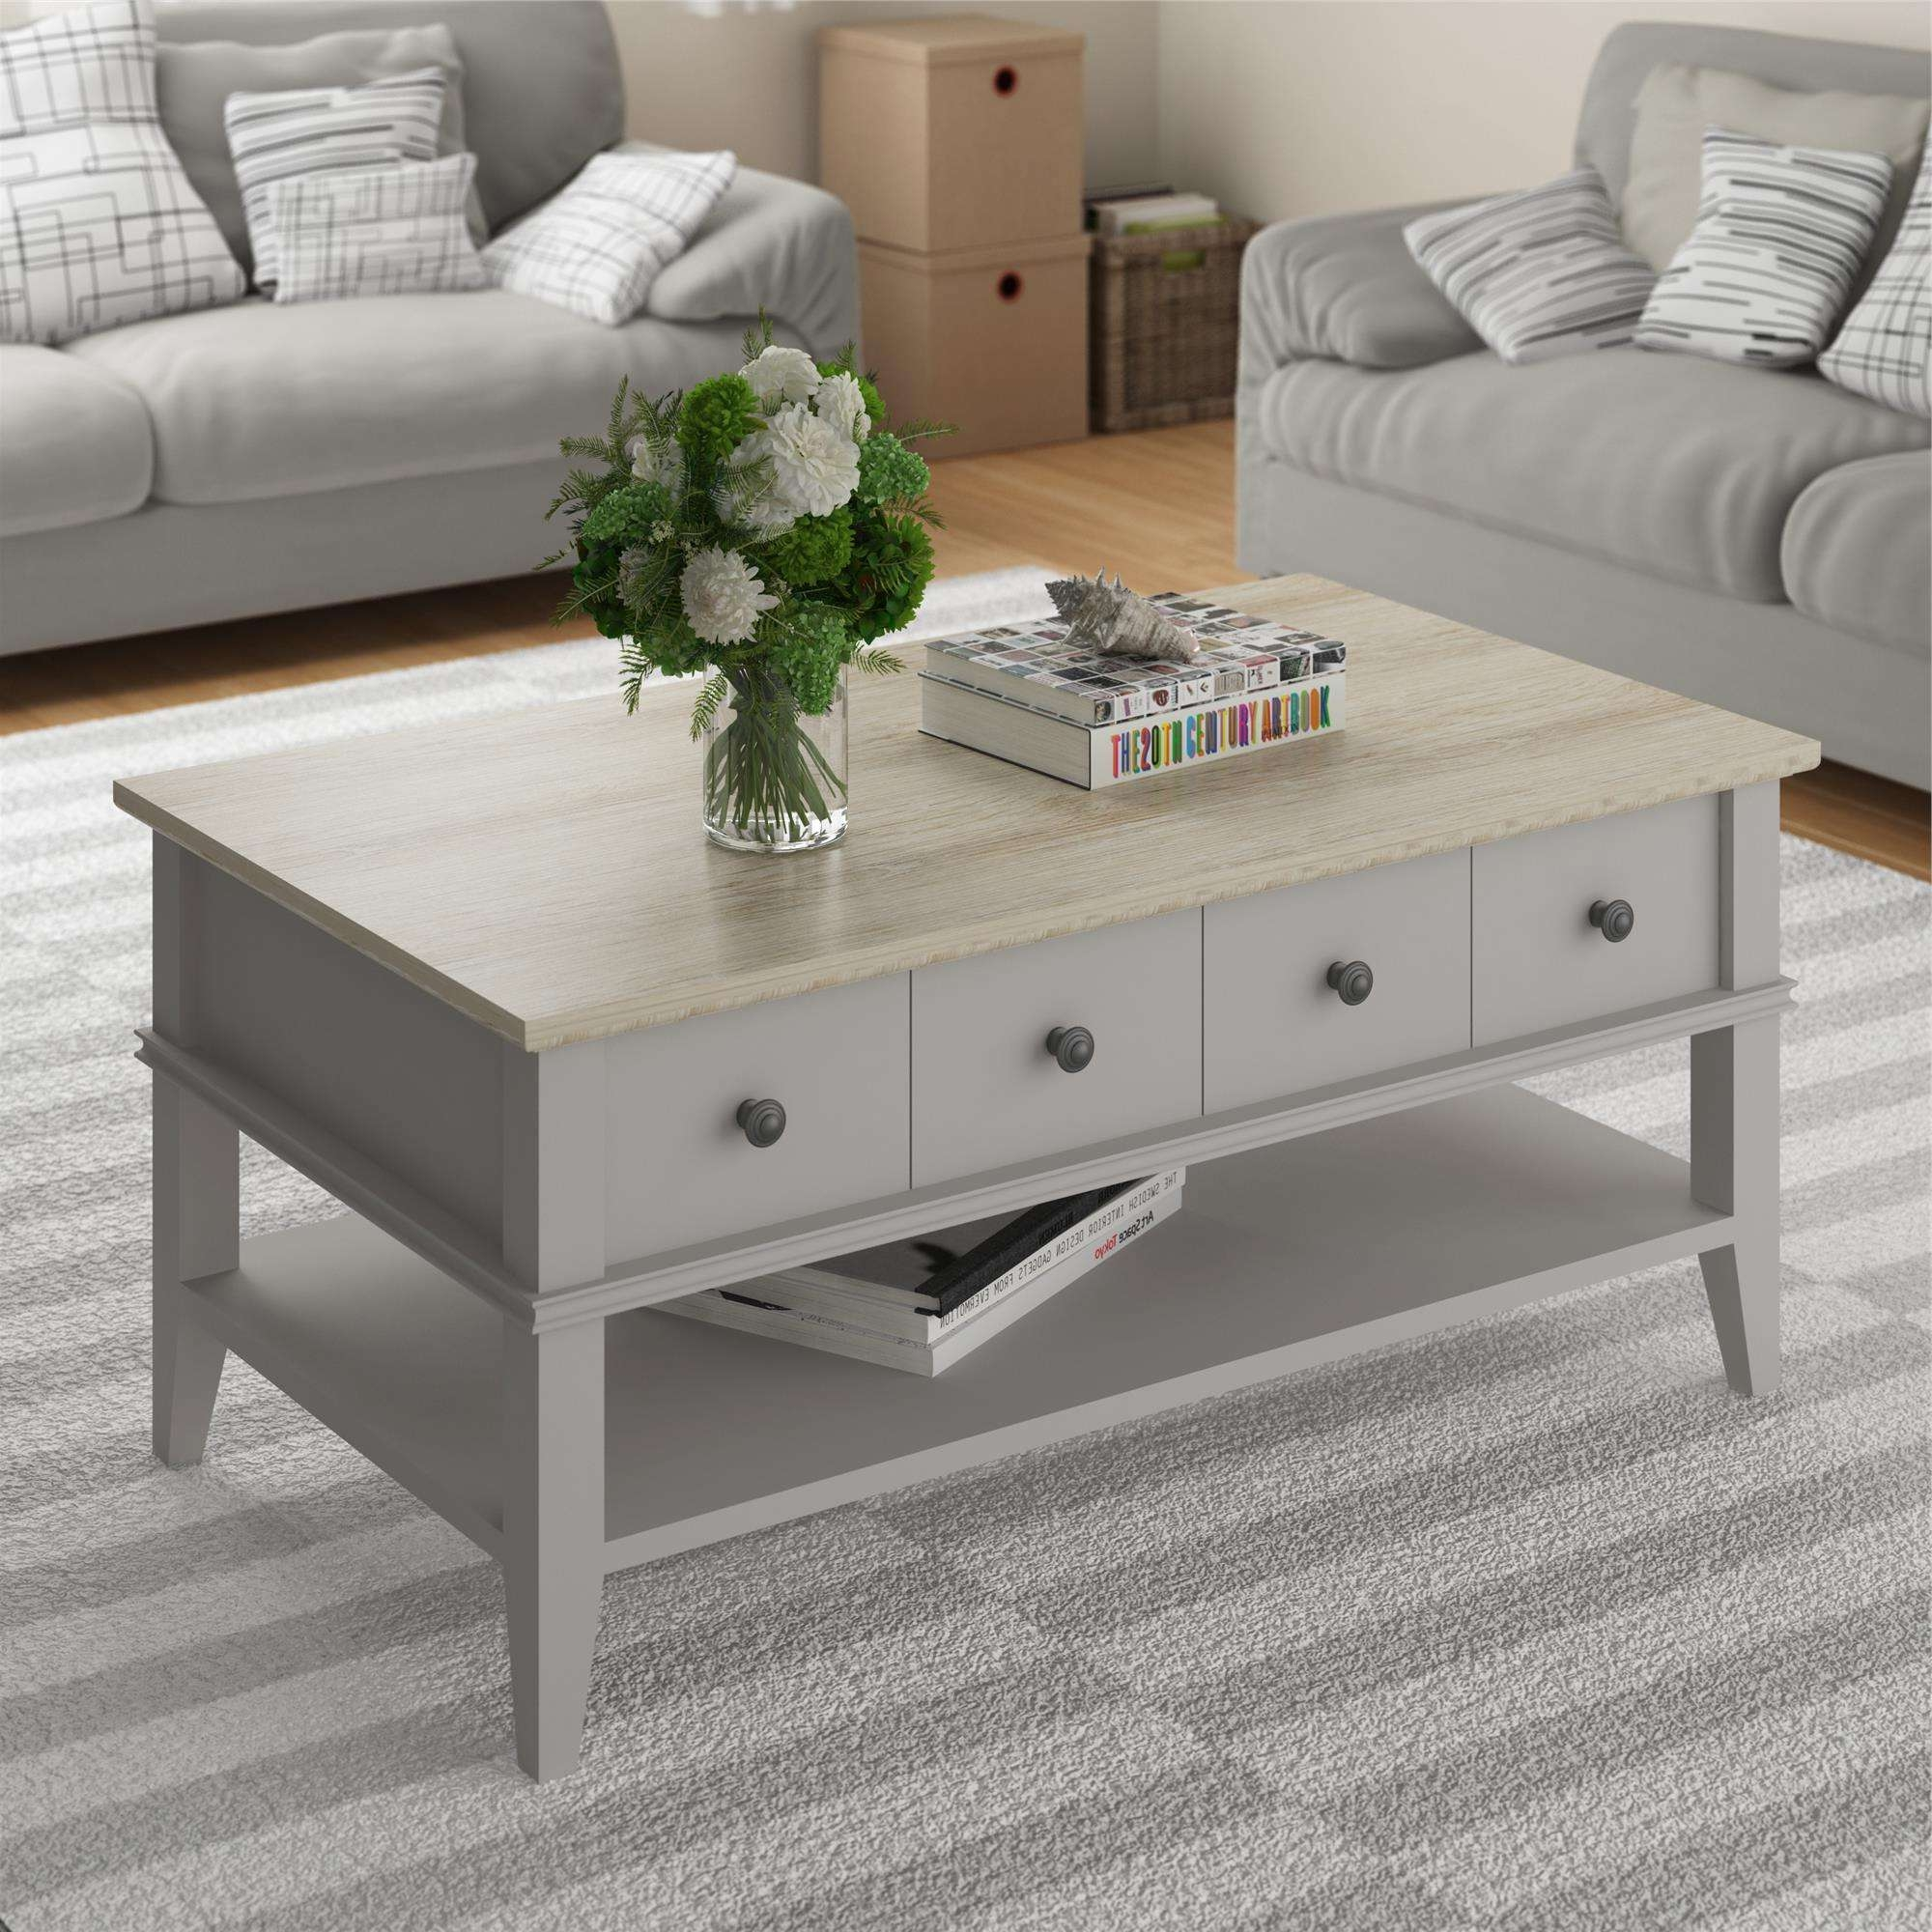 Most Recent Grey Wash Wood Coffee Tables Inside Coffee Tables : Grey Wash Coffee Table Beautiful Impressive Gray (View 15 of 20)